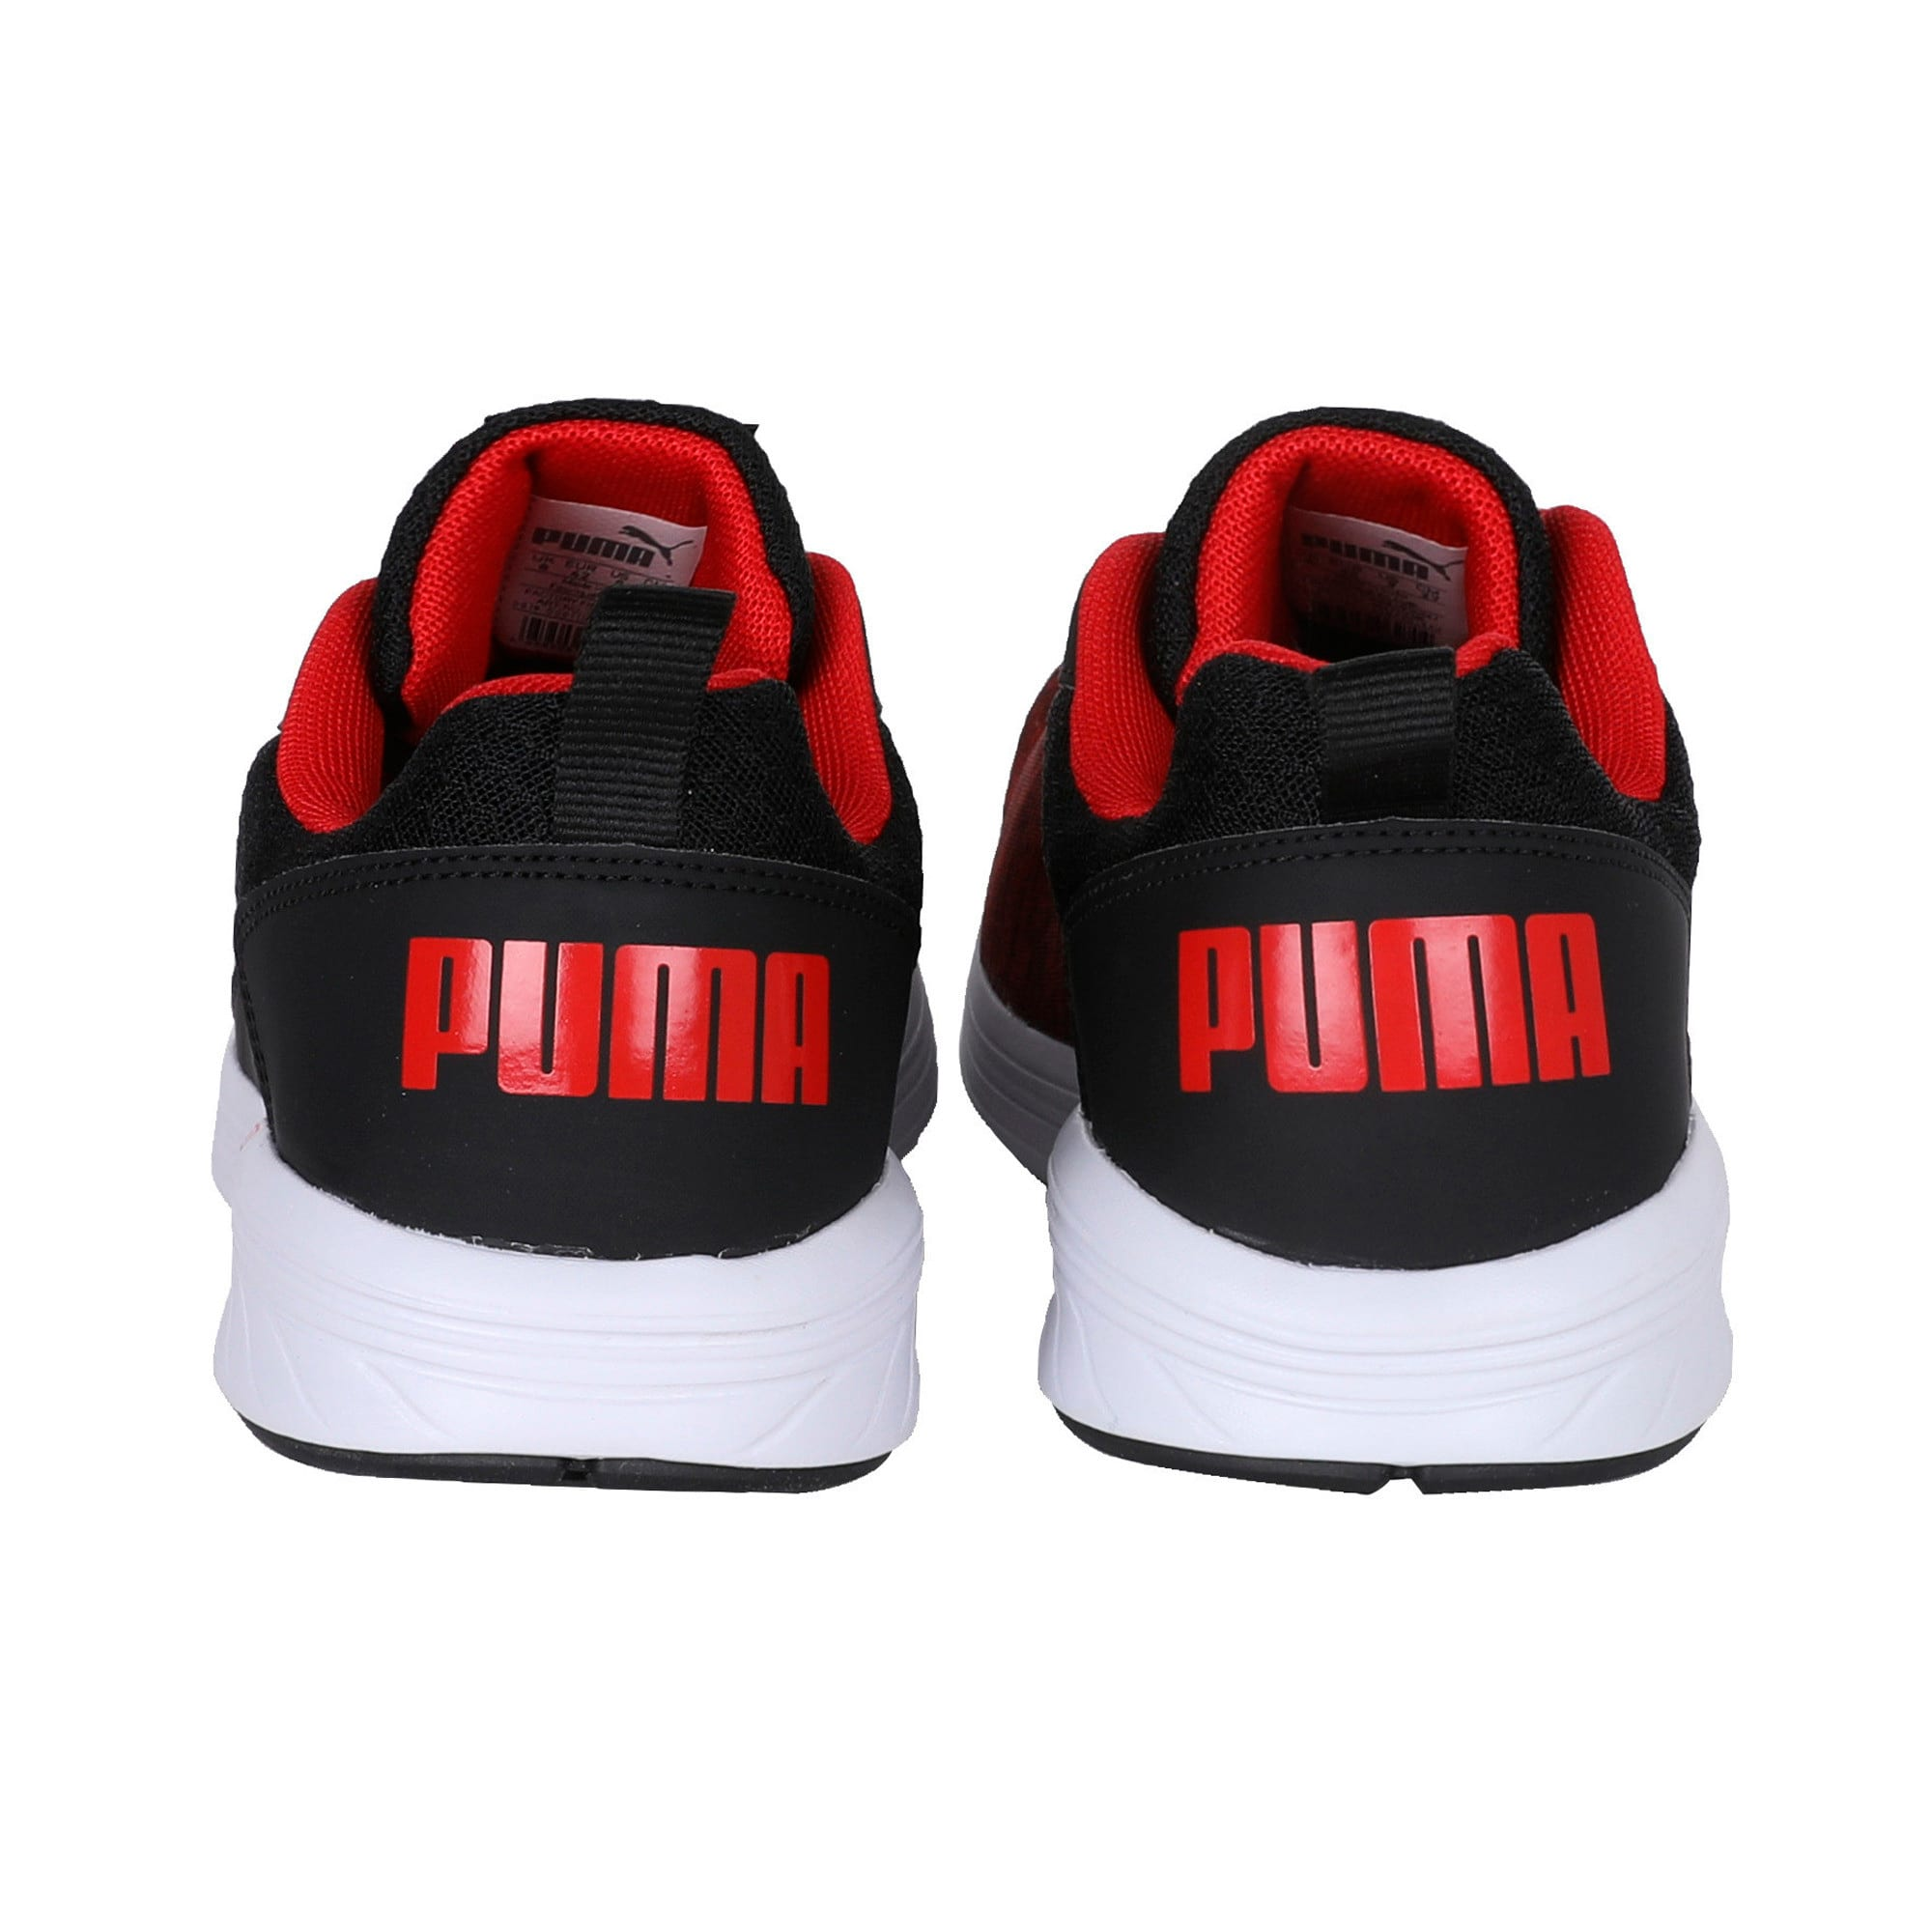 Thumbnail 3 of Comet IPD, Puma Black-High Risk Red, medium-IND